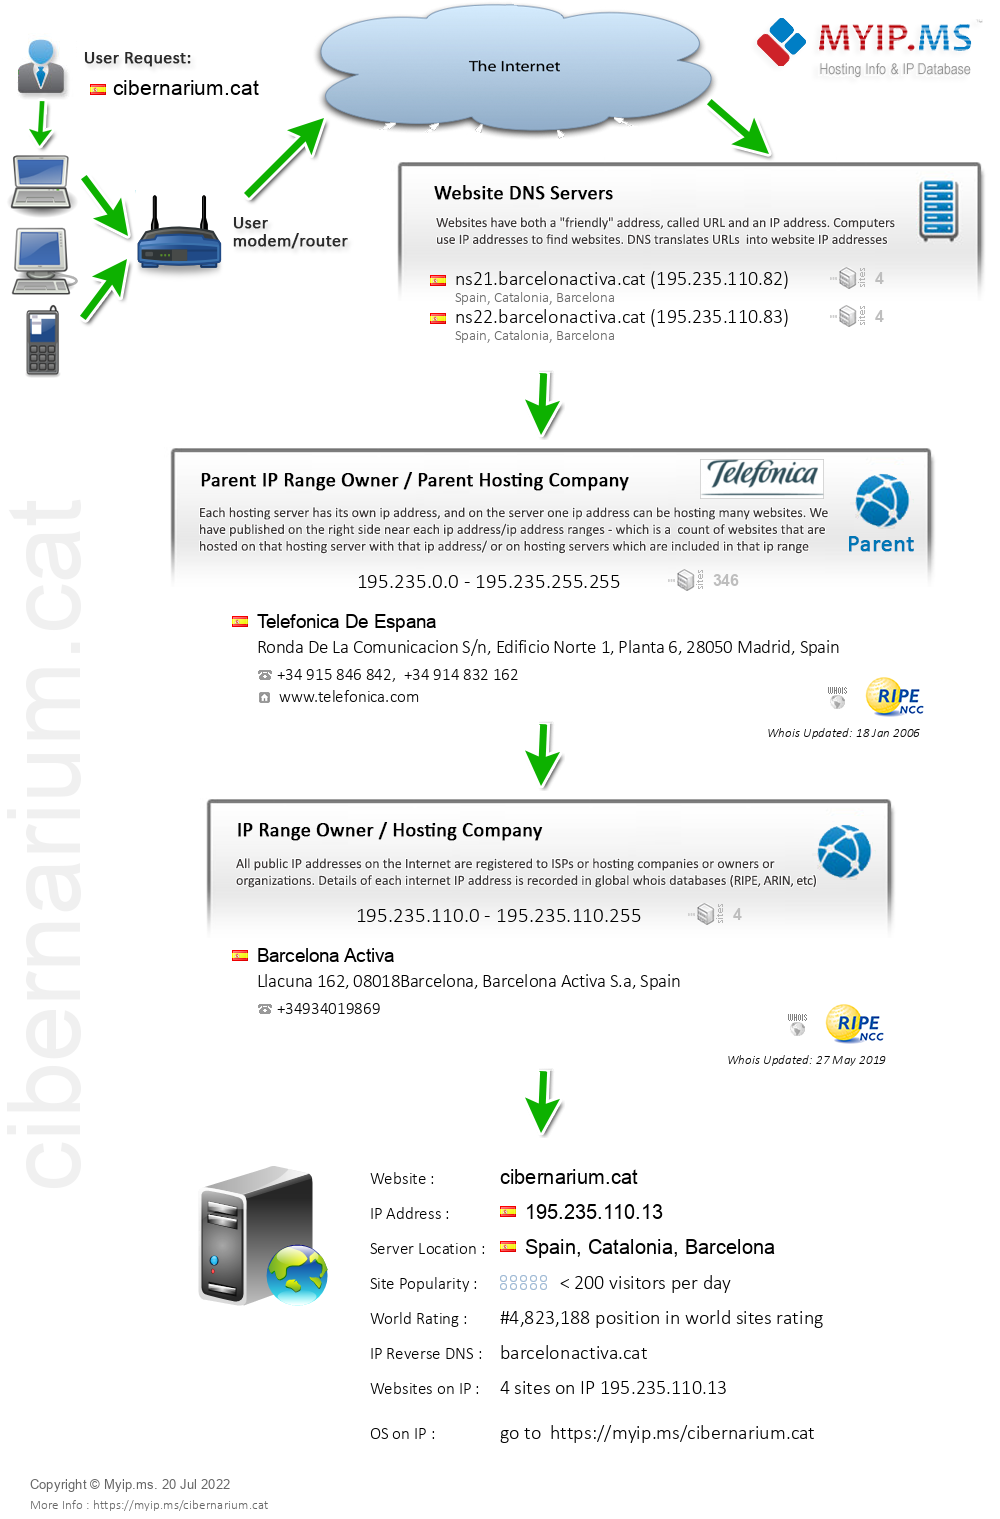 Cibernarium.cat - Website Hosting Visual IP Diagram